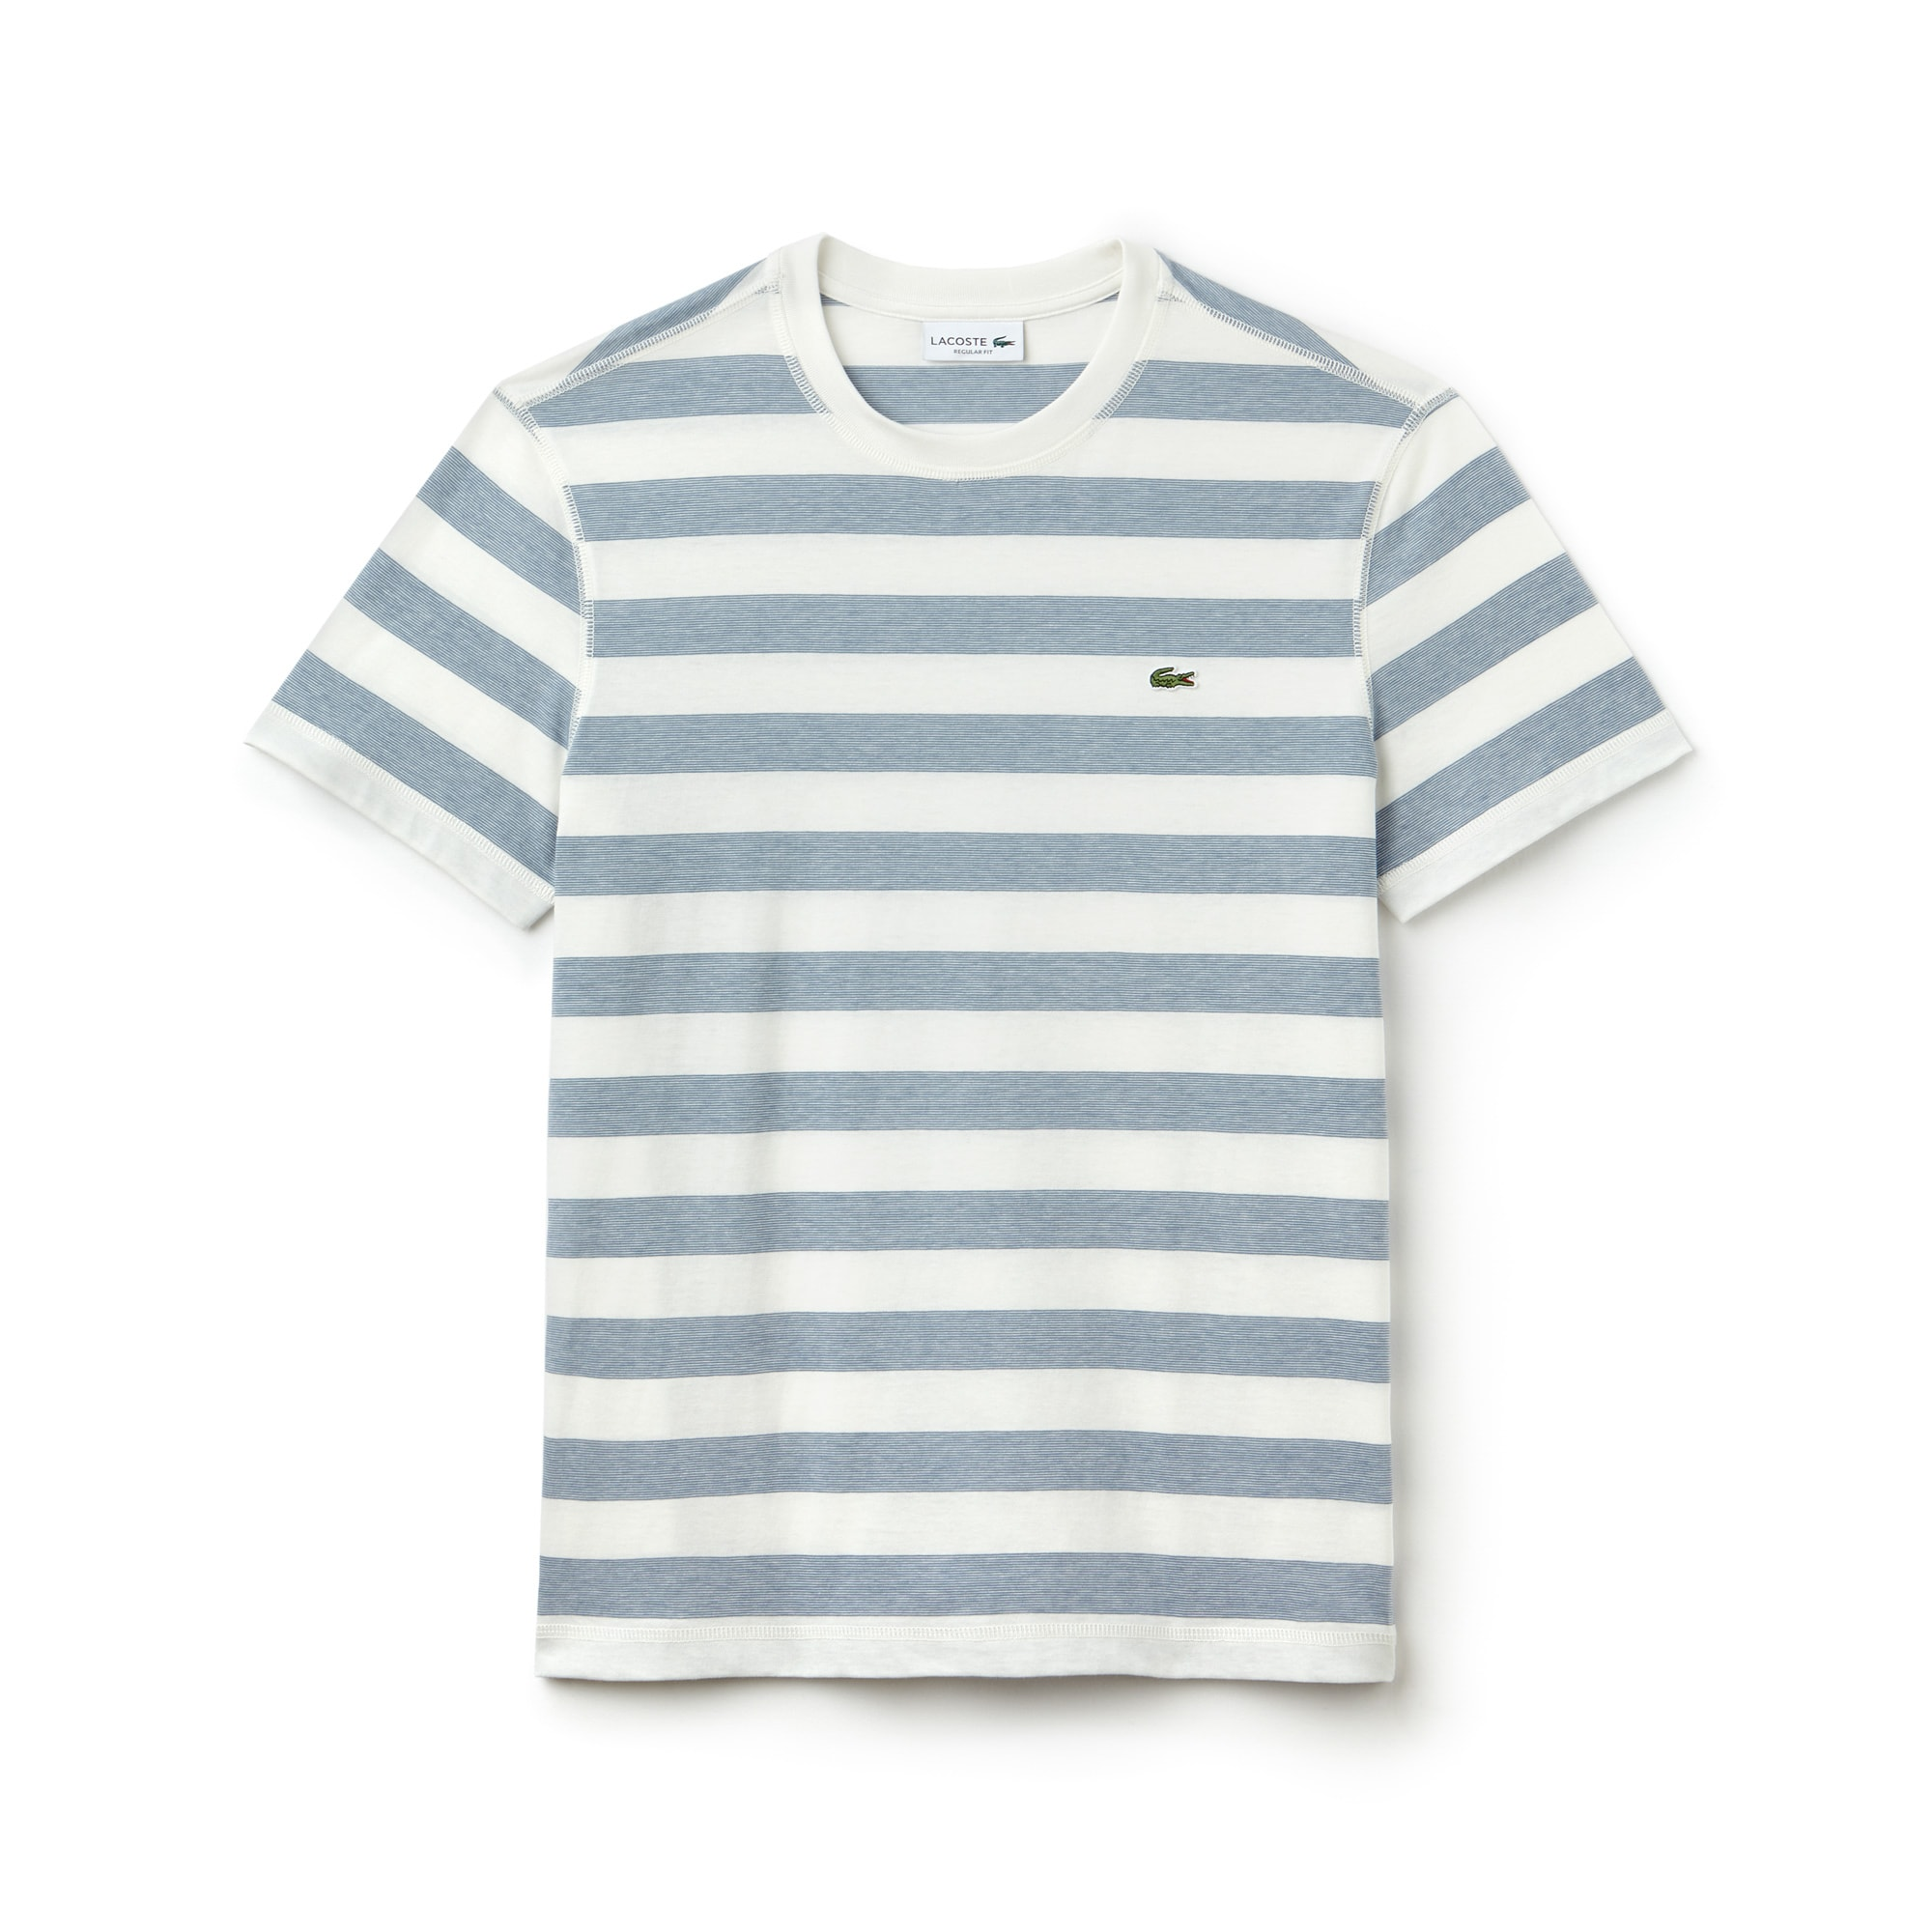 6a1ec915b Men s Crew Neck Striped Cotton T-Shirt